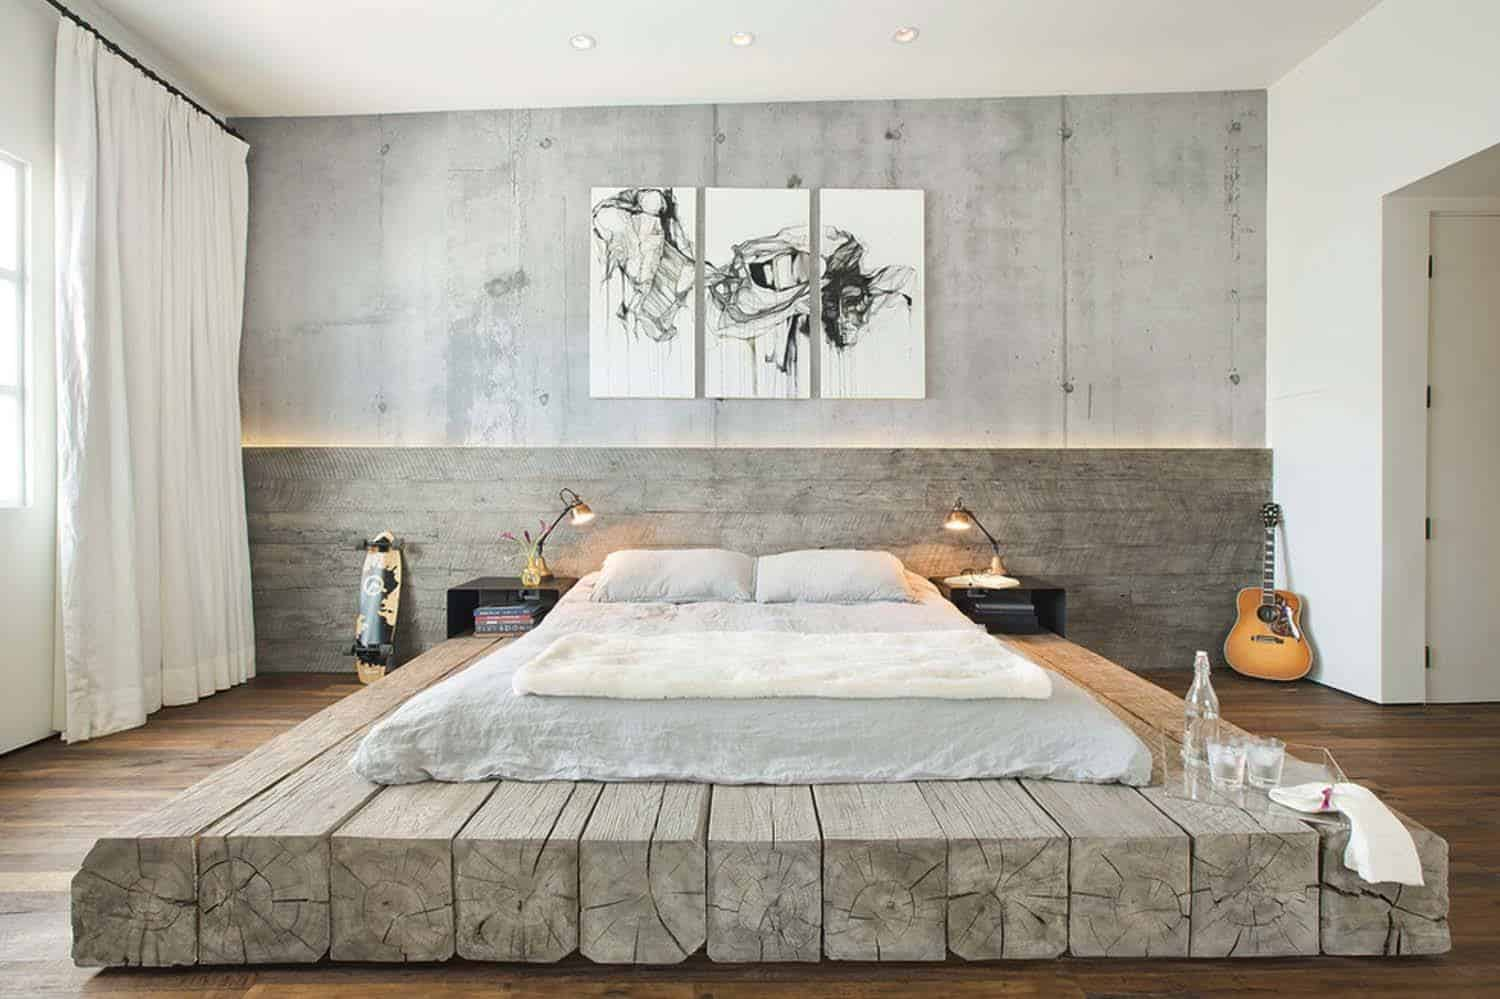 Gentil Industrial Style Bedroom Design Ideas 05 1 Kindesign